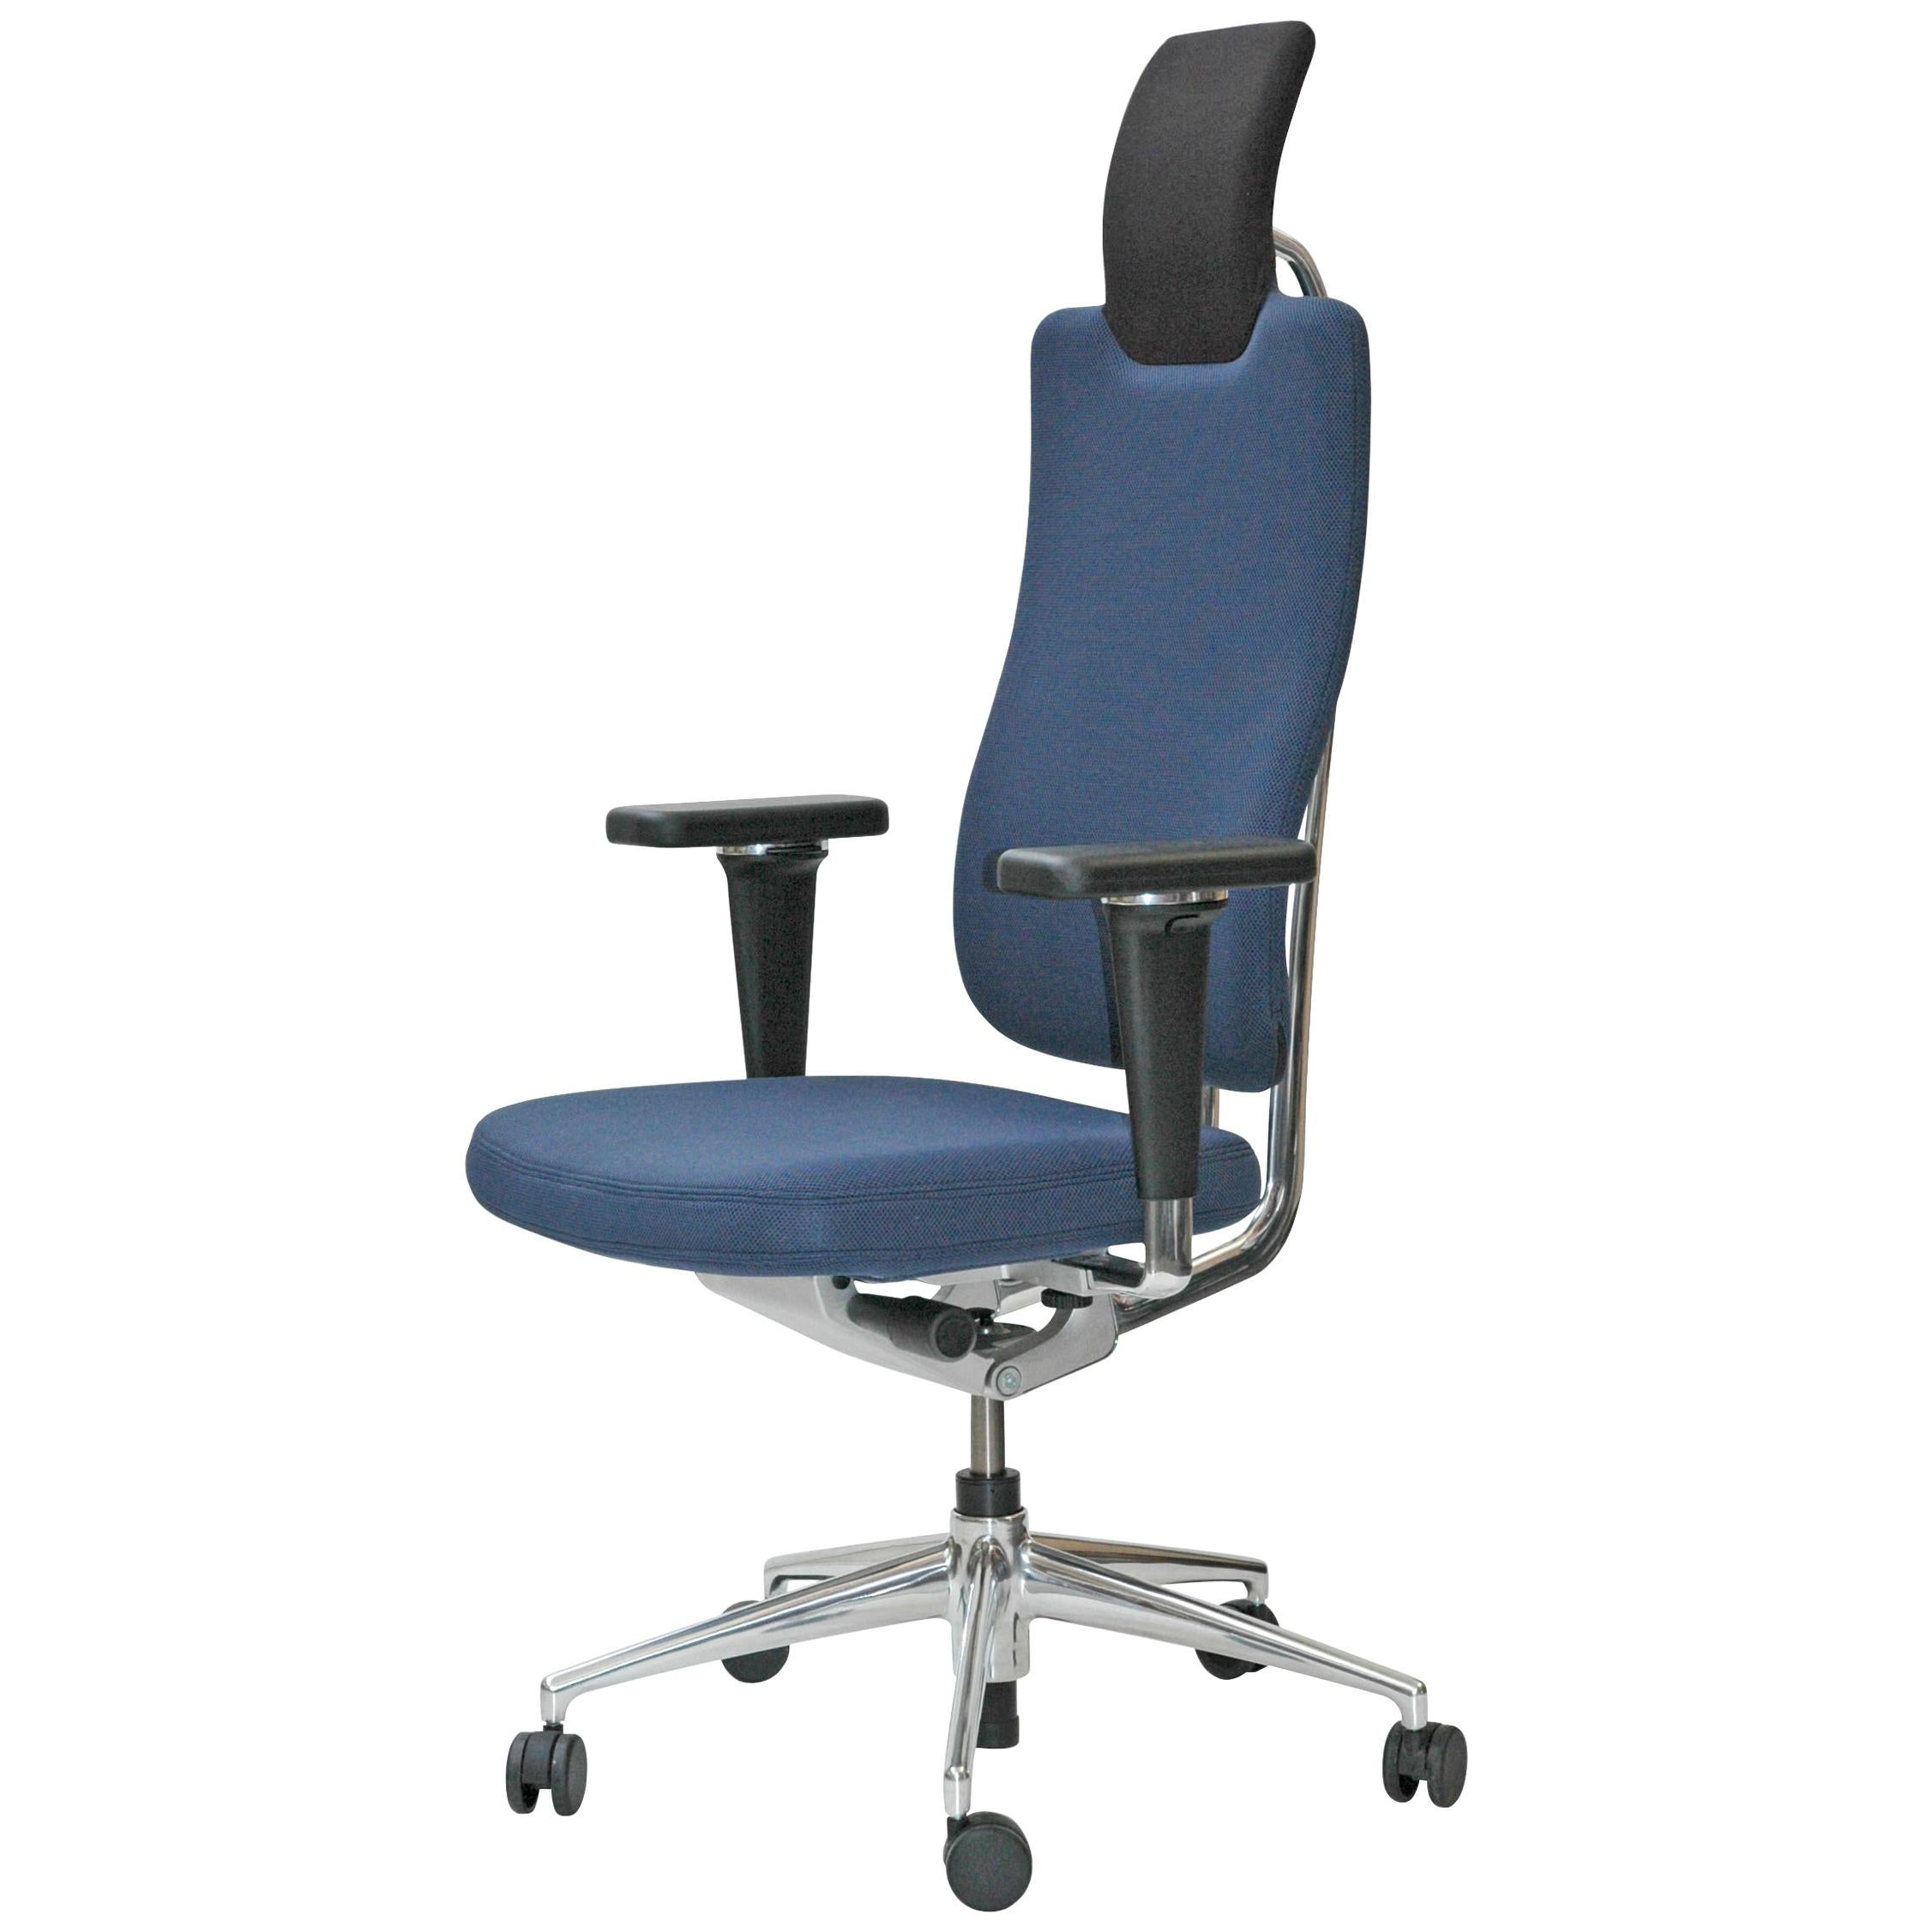 vitra ergonomic chair cover rental contract headline office in blue with 3d armrest by mario and claudio bellini for sale